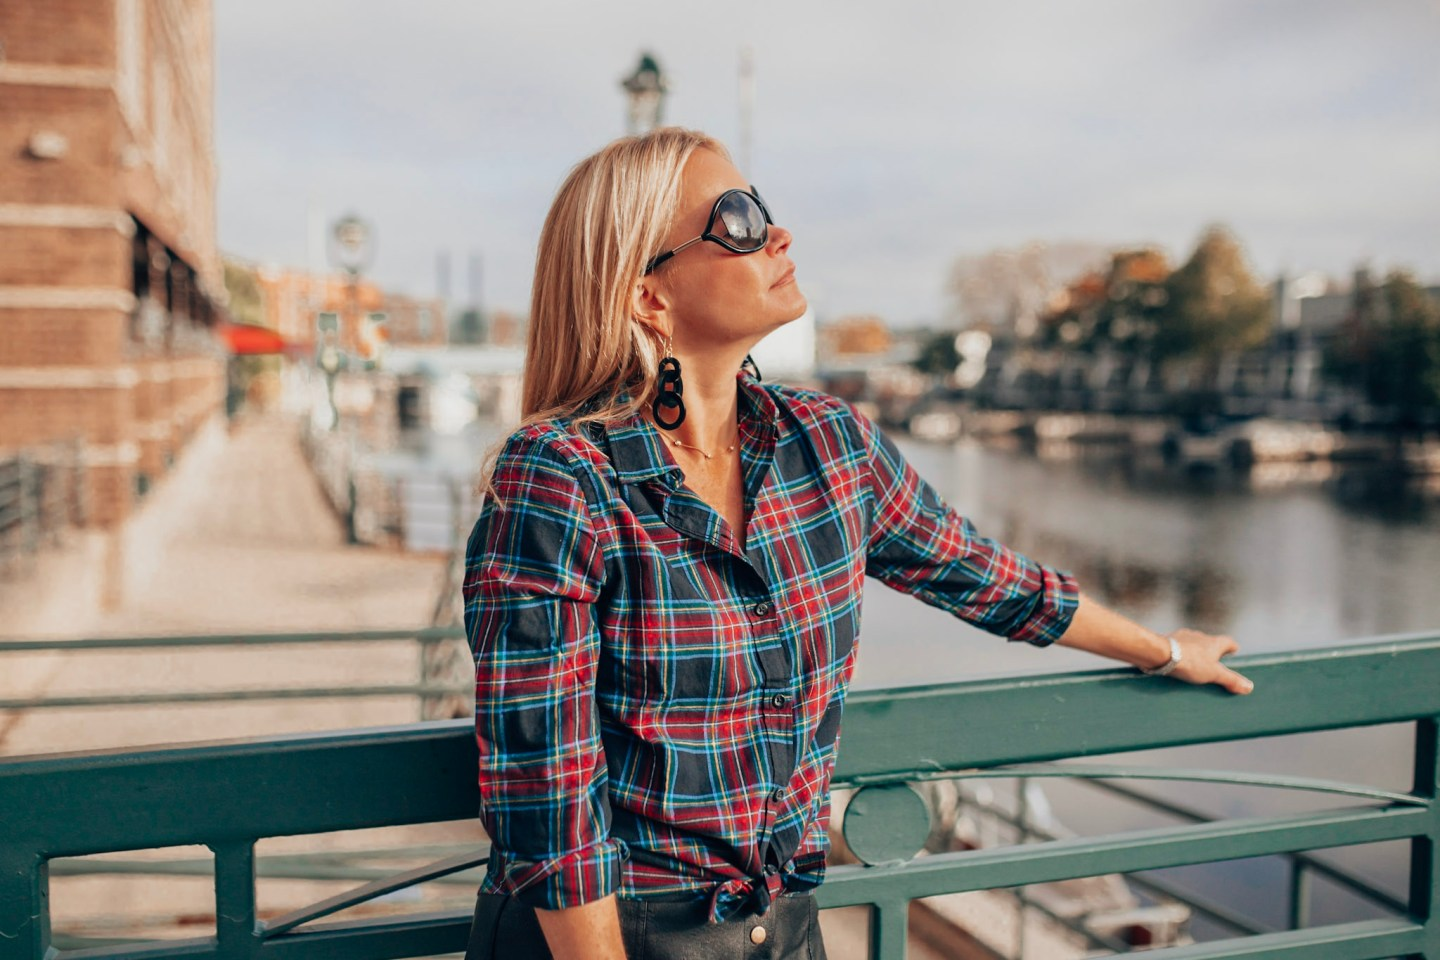 Holiday Plaid Picks- Plaid button down top with Lisi Lerch acryllic earring seen on style and travel blog, Gloss and Harbour.